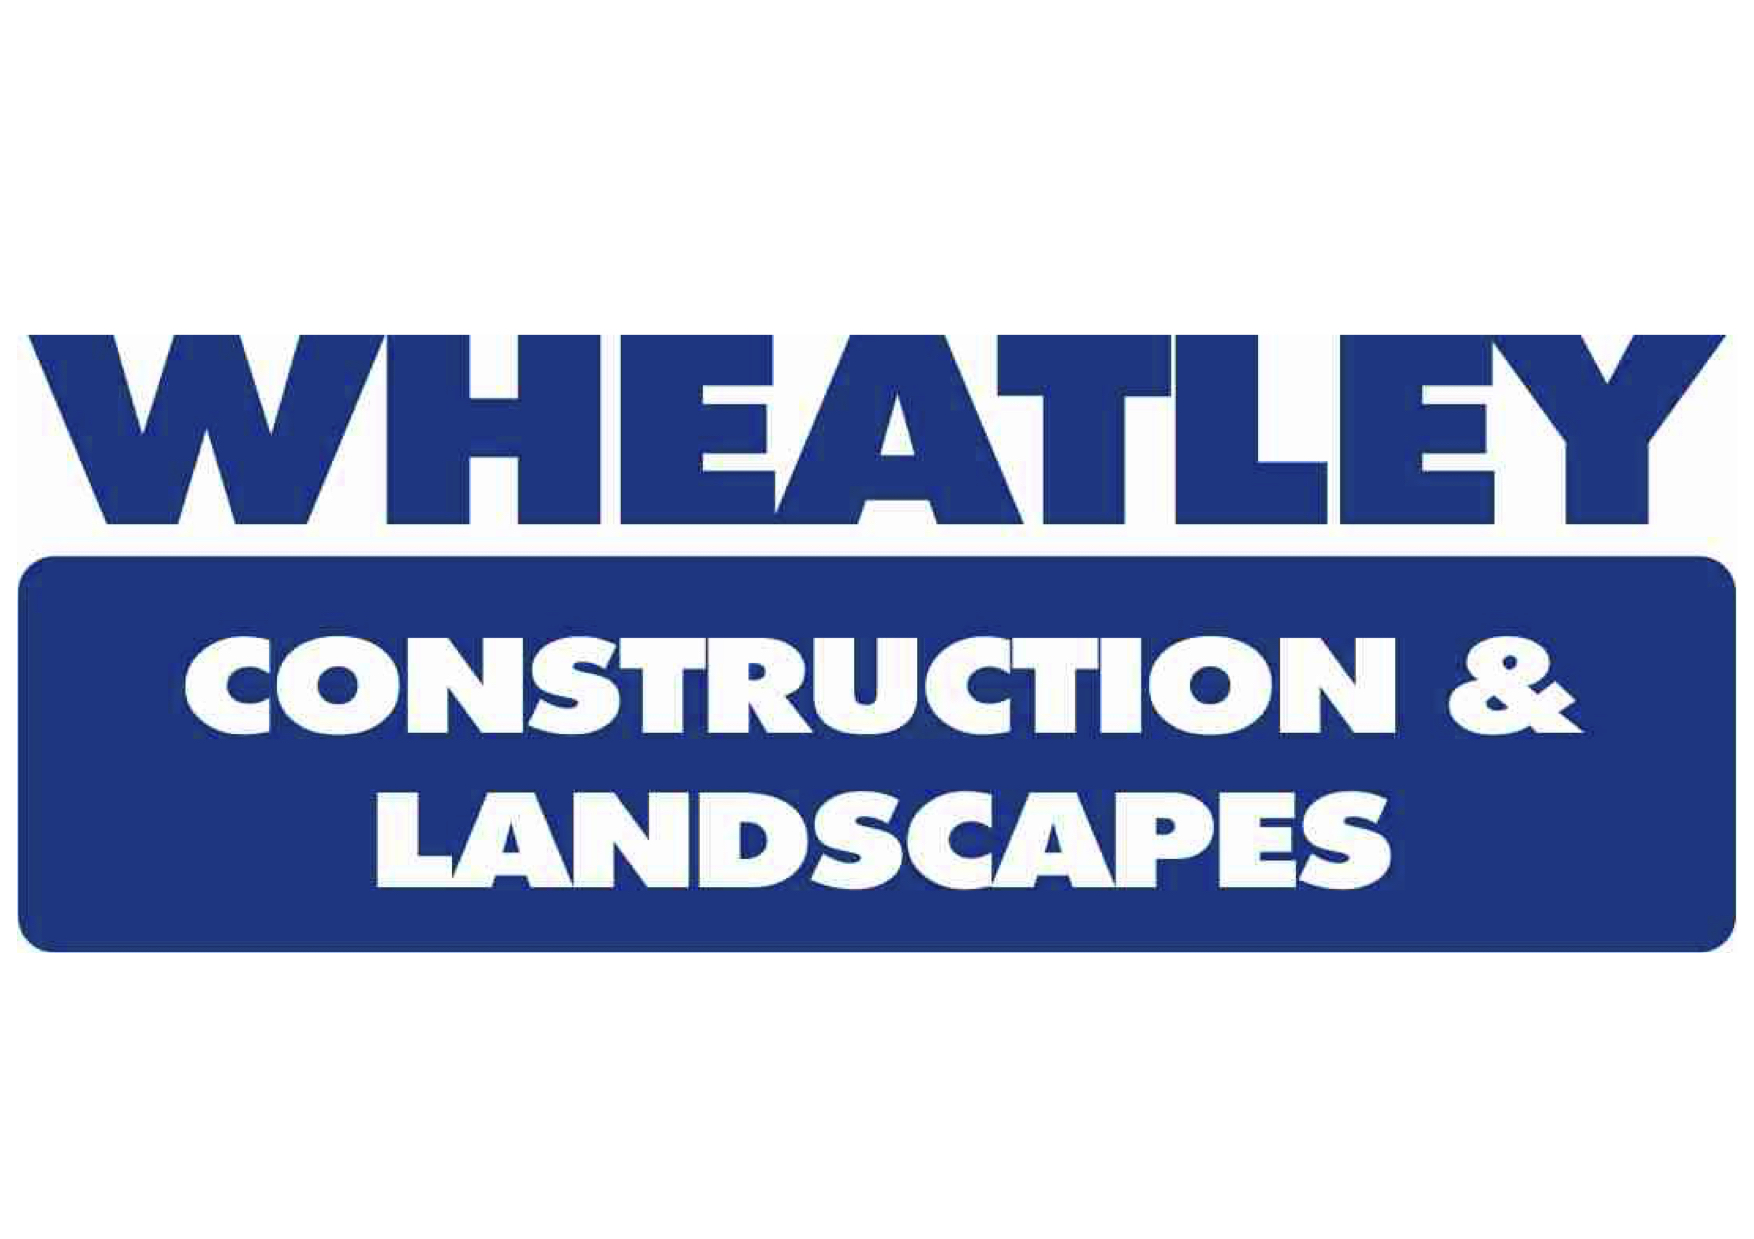 wheatley construction & landscapes